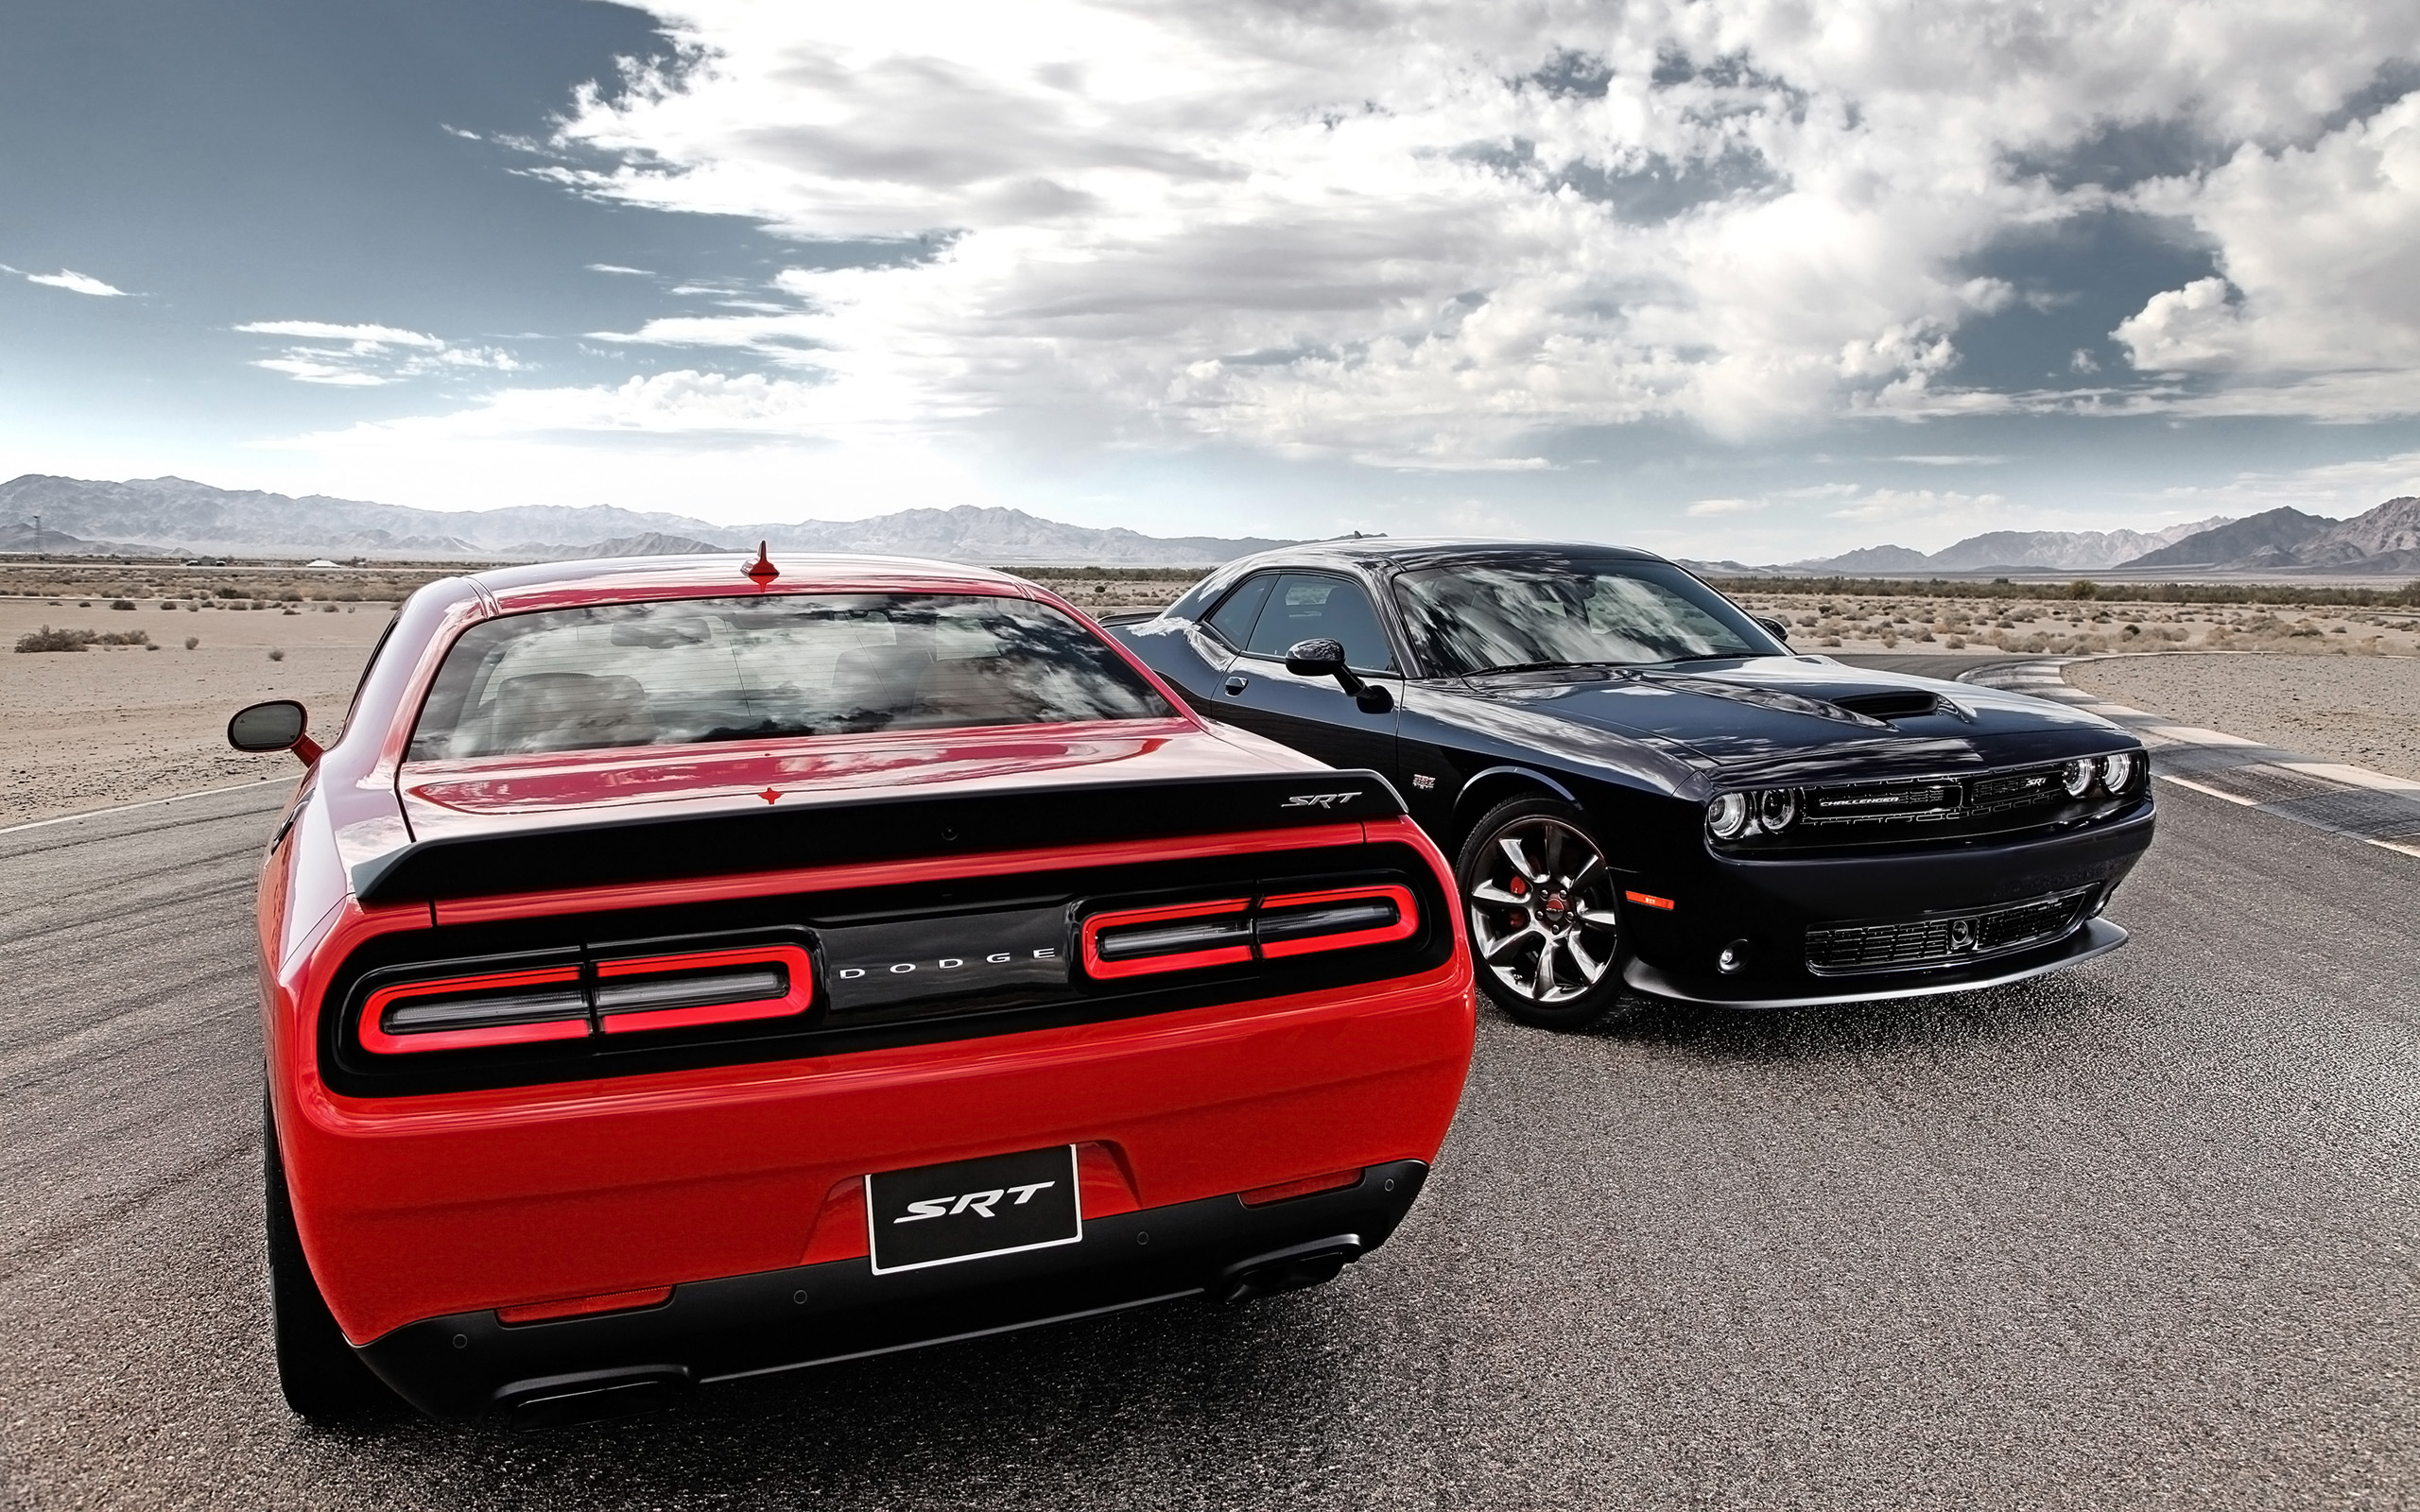 2015 Dodge Challenger SRT Cars Wallpaper HD Car Wallpapers 2560x1600